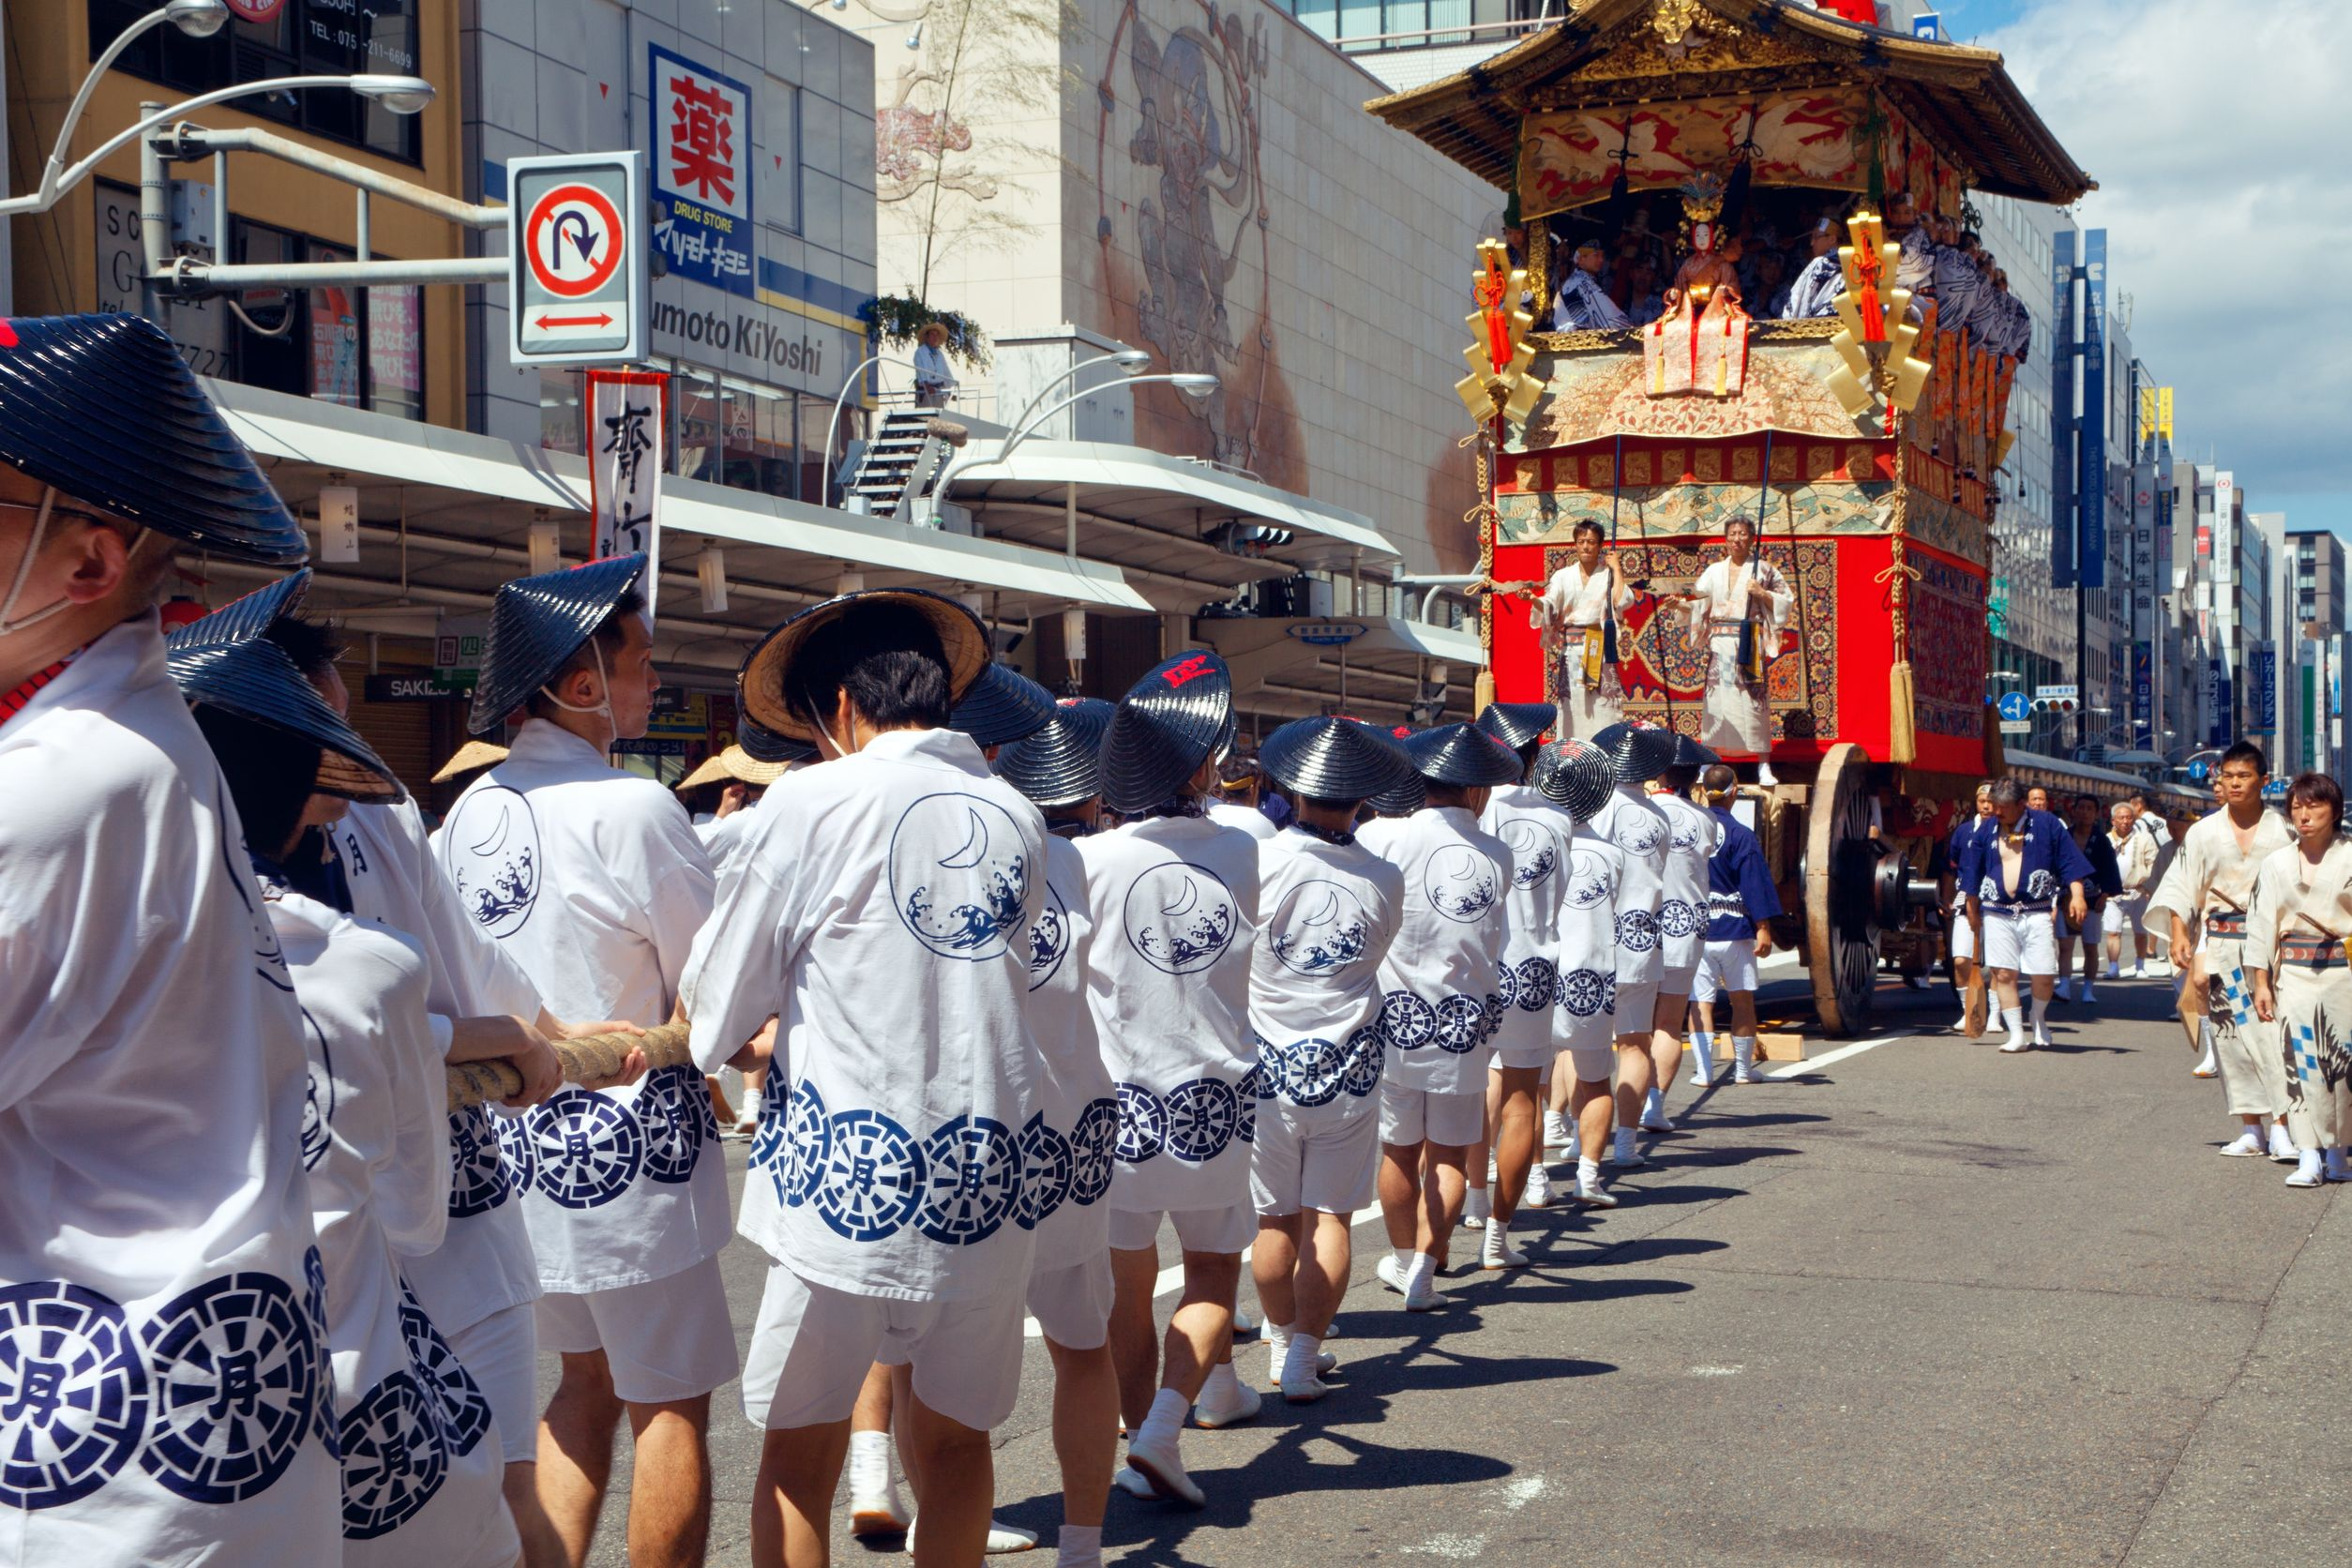 The Gion festivals in Japan